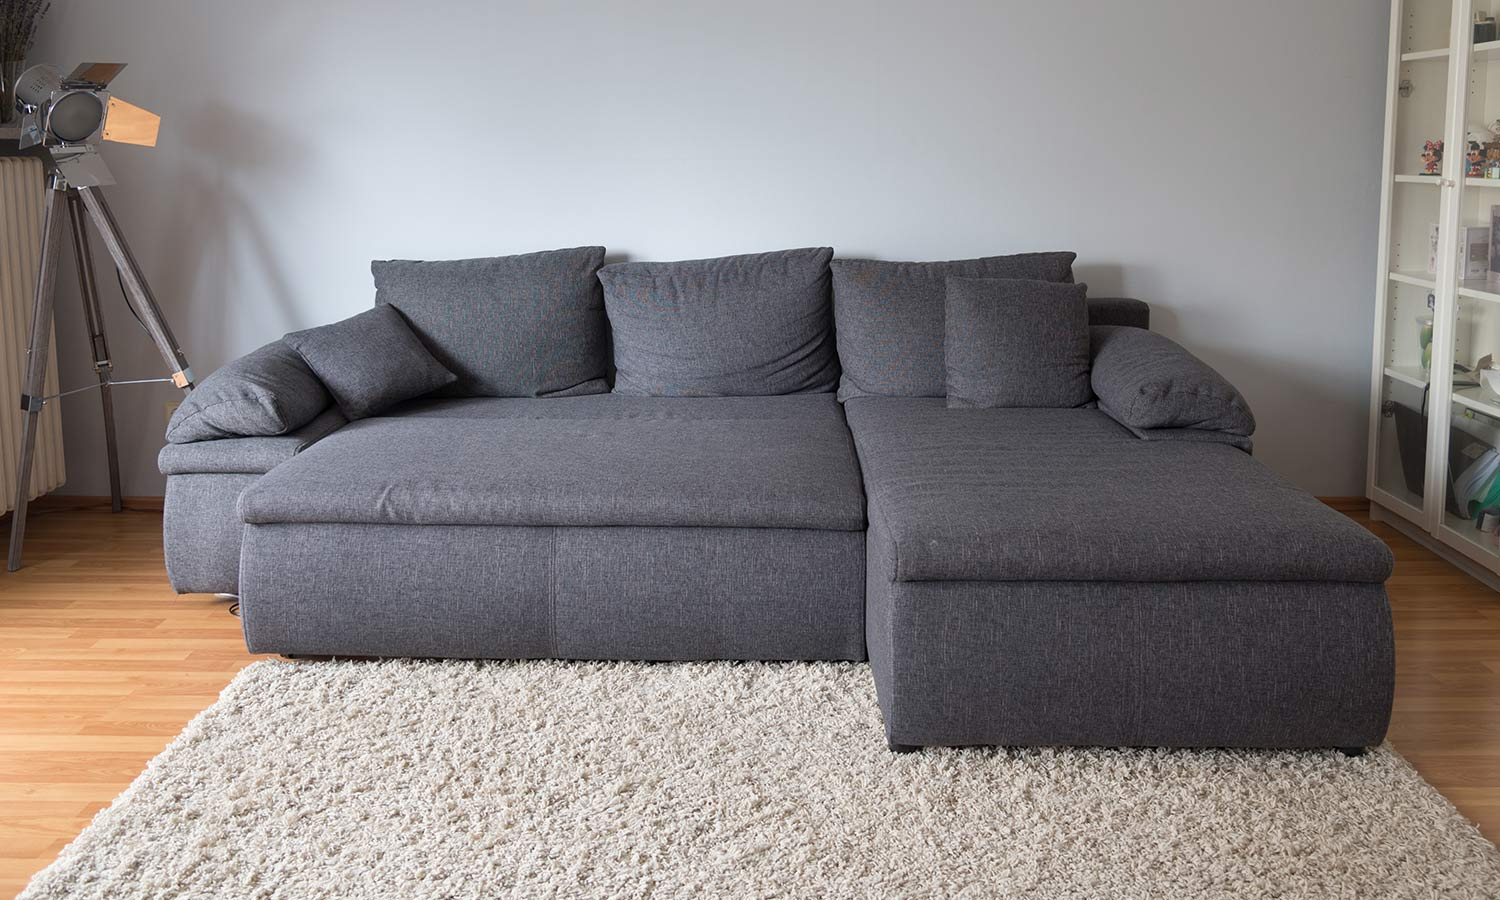 A convertable bed styles as a sofa with big pillows and an attached chaise lounge.